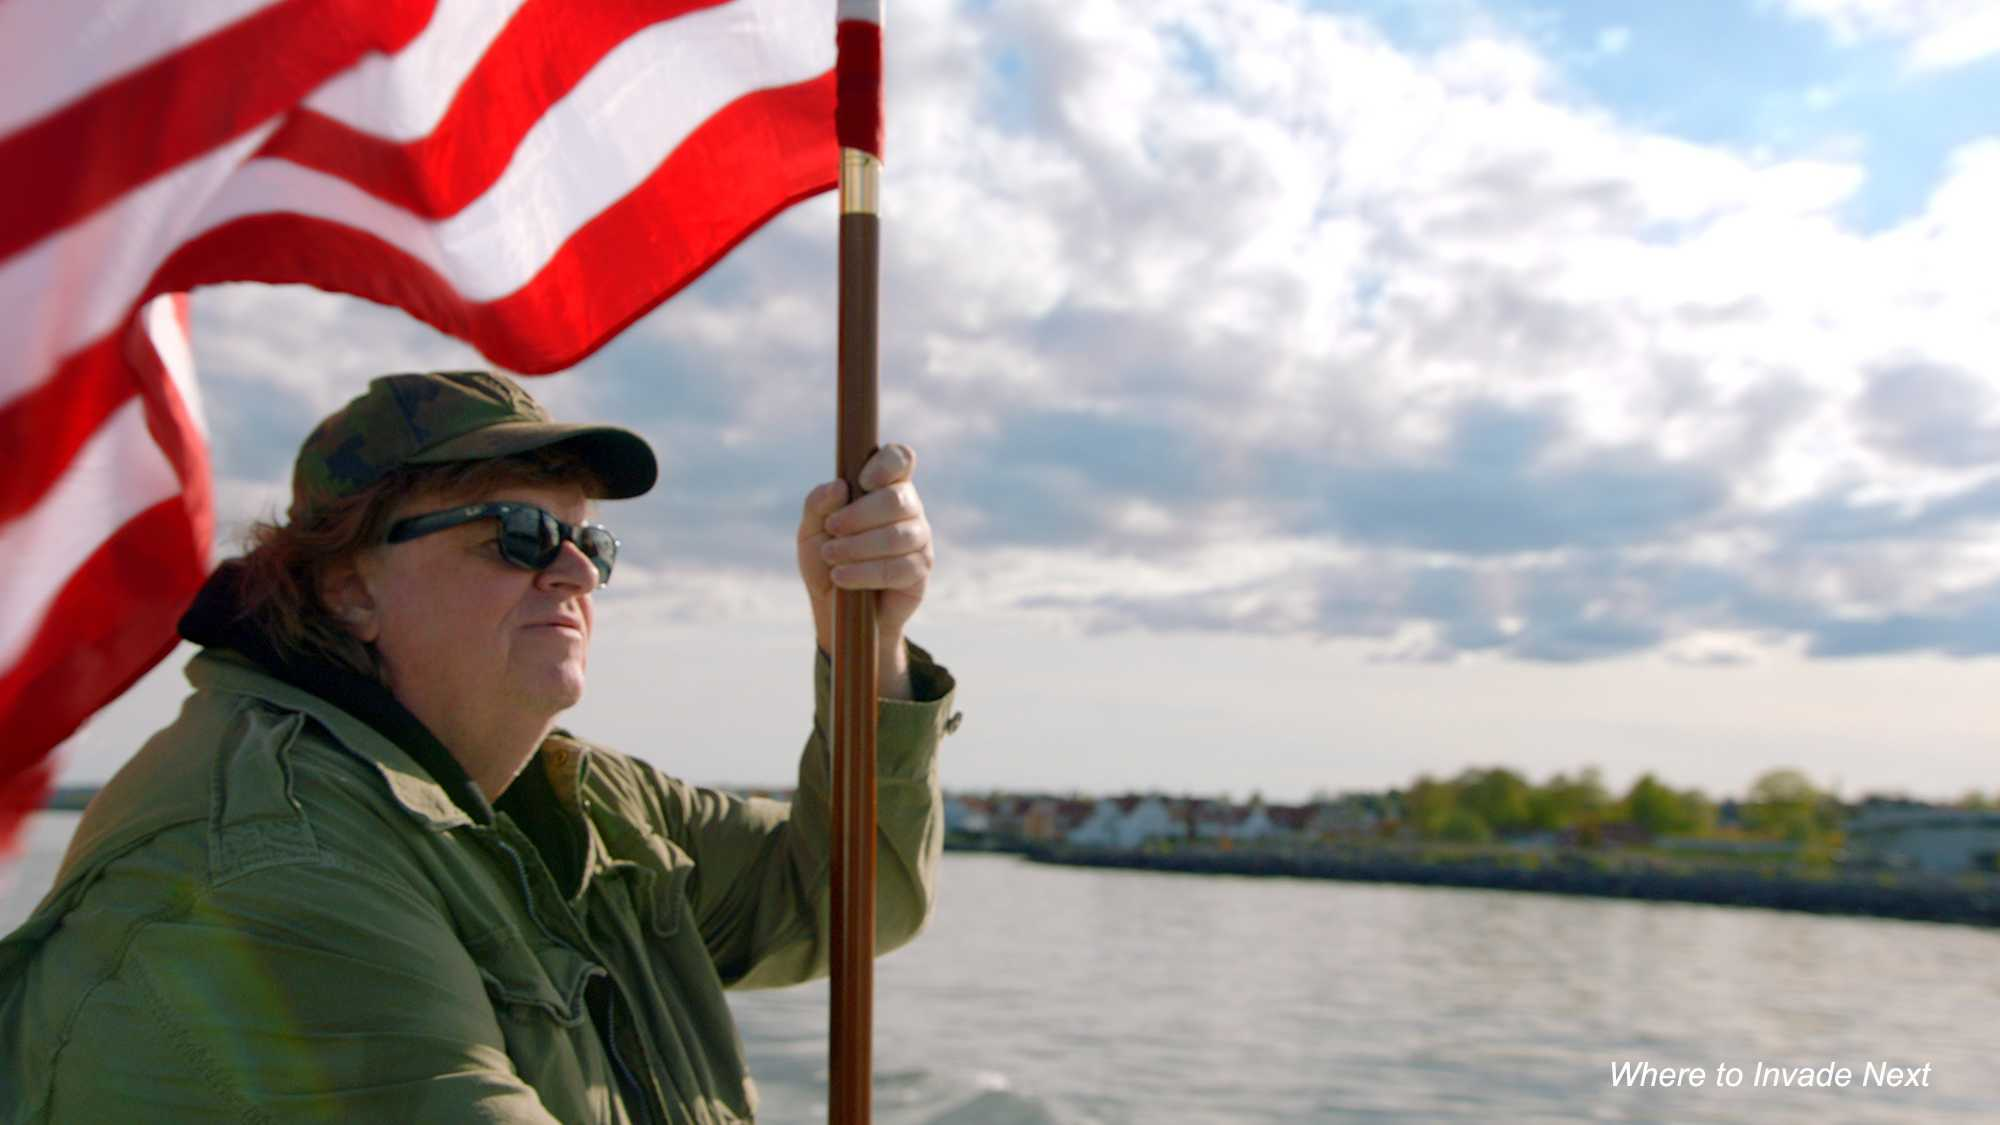 Where to Invade Next (image 1)